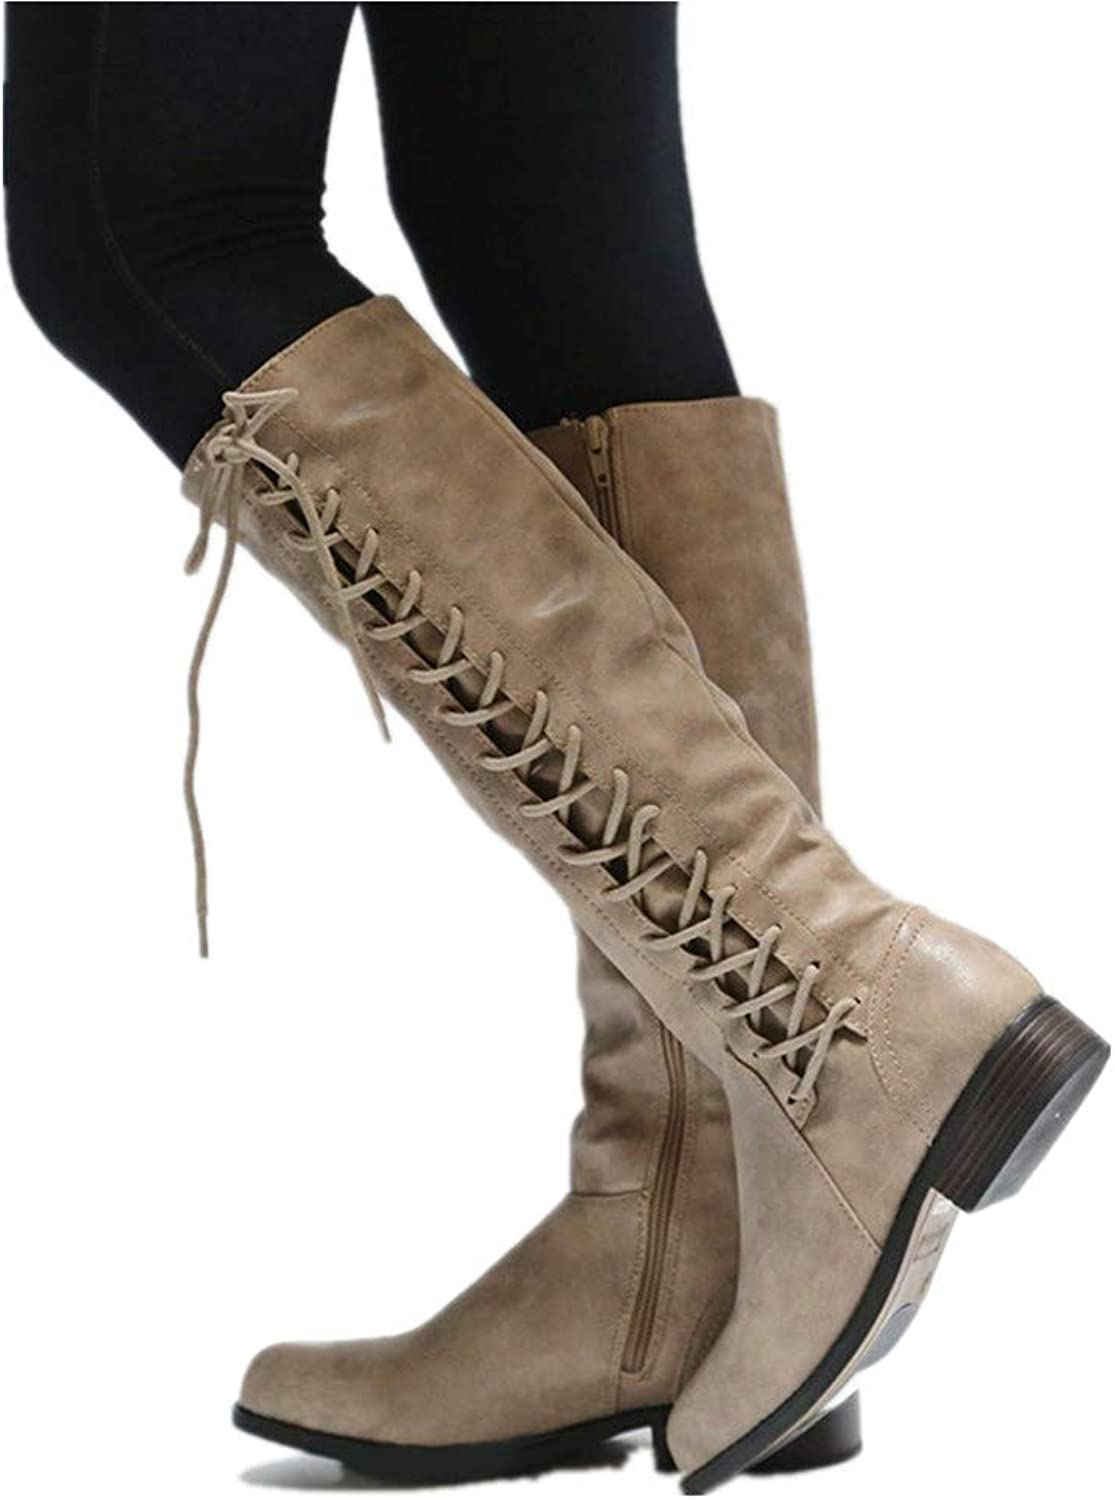 Women Knee Knight Boots Lace Up Thigh High Boots Zipper Trendy Military Style Boot